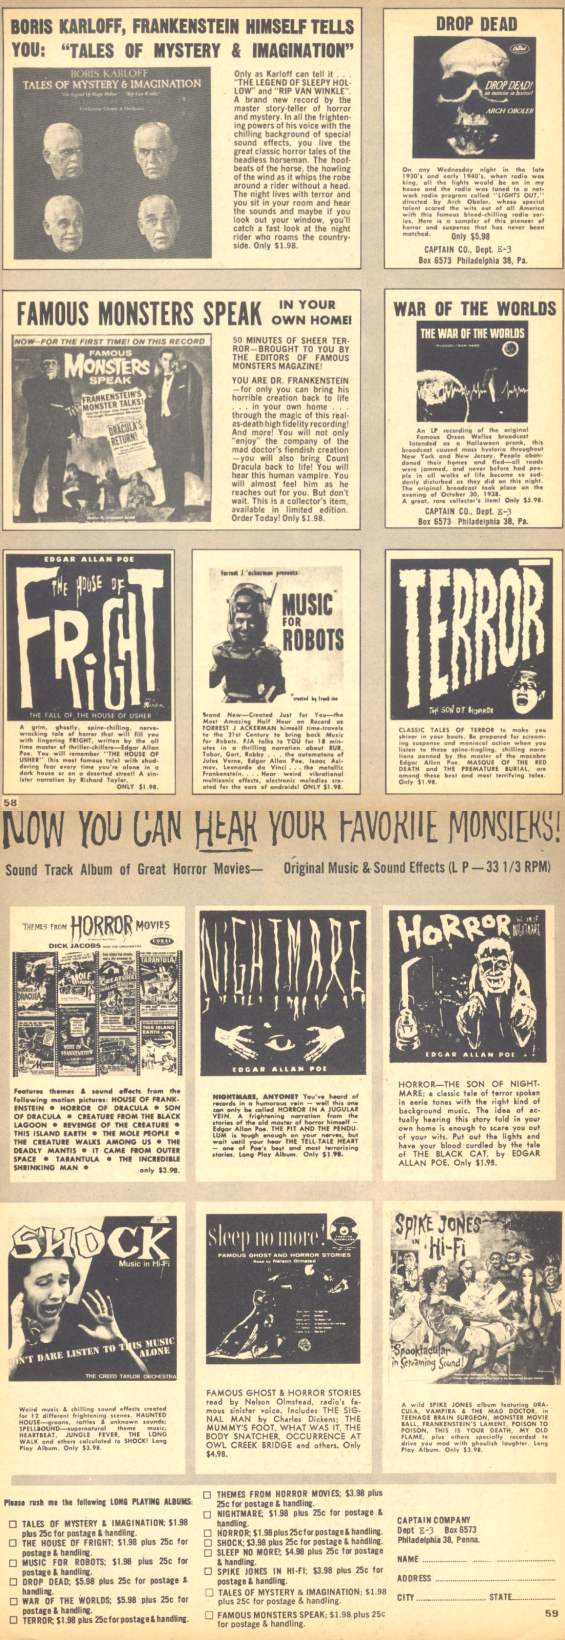 Eerie magazine ad from 1966 - Now You Can Hear Your Favorite Monsters